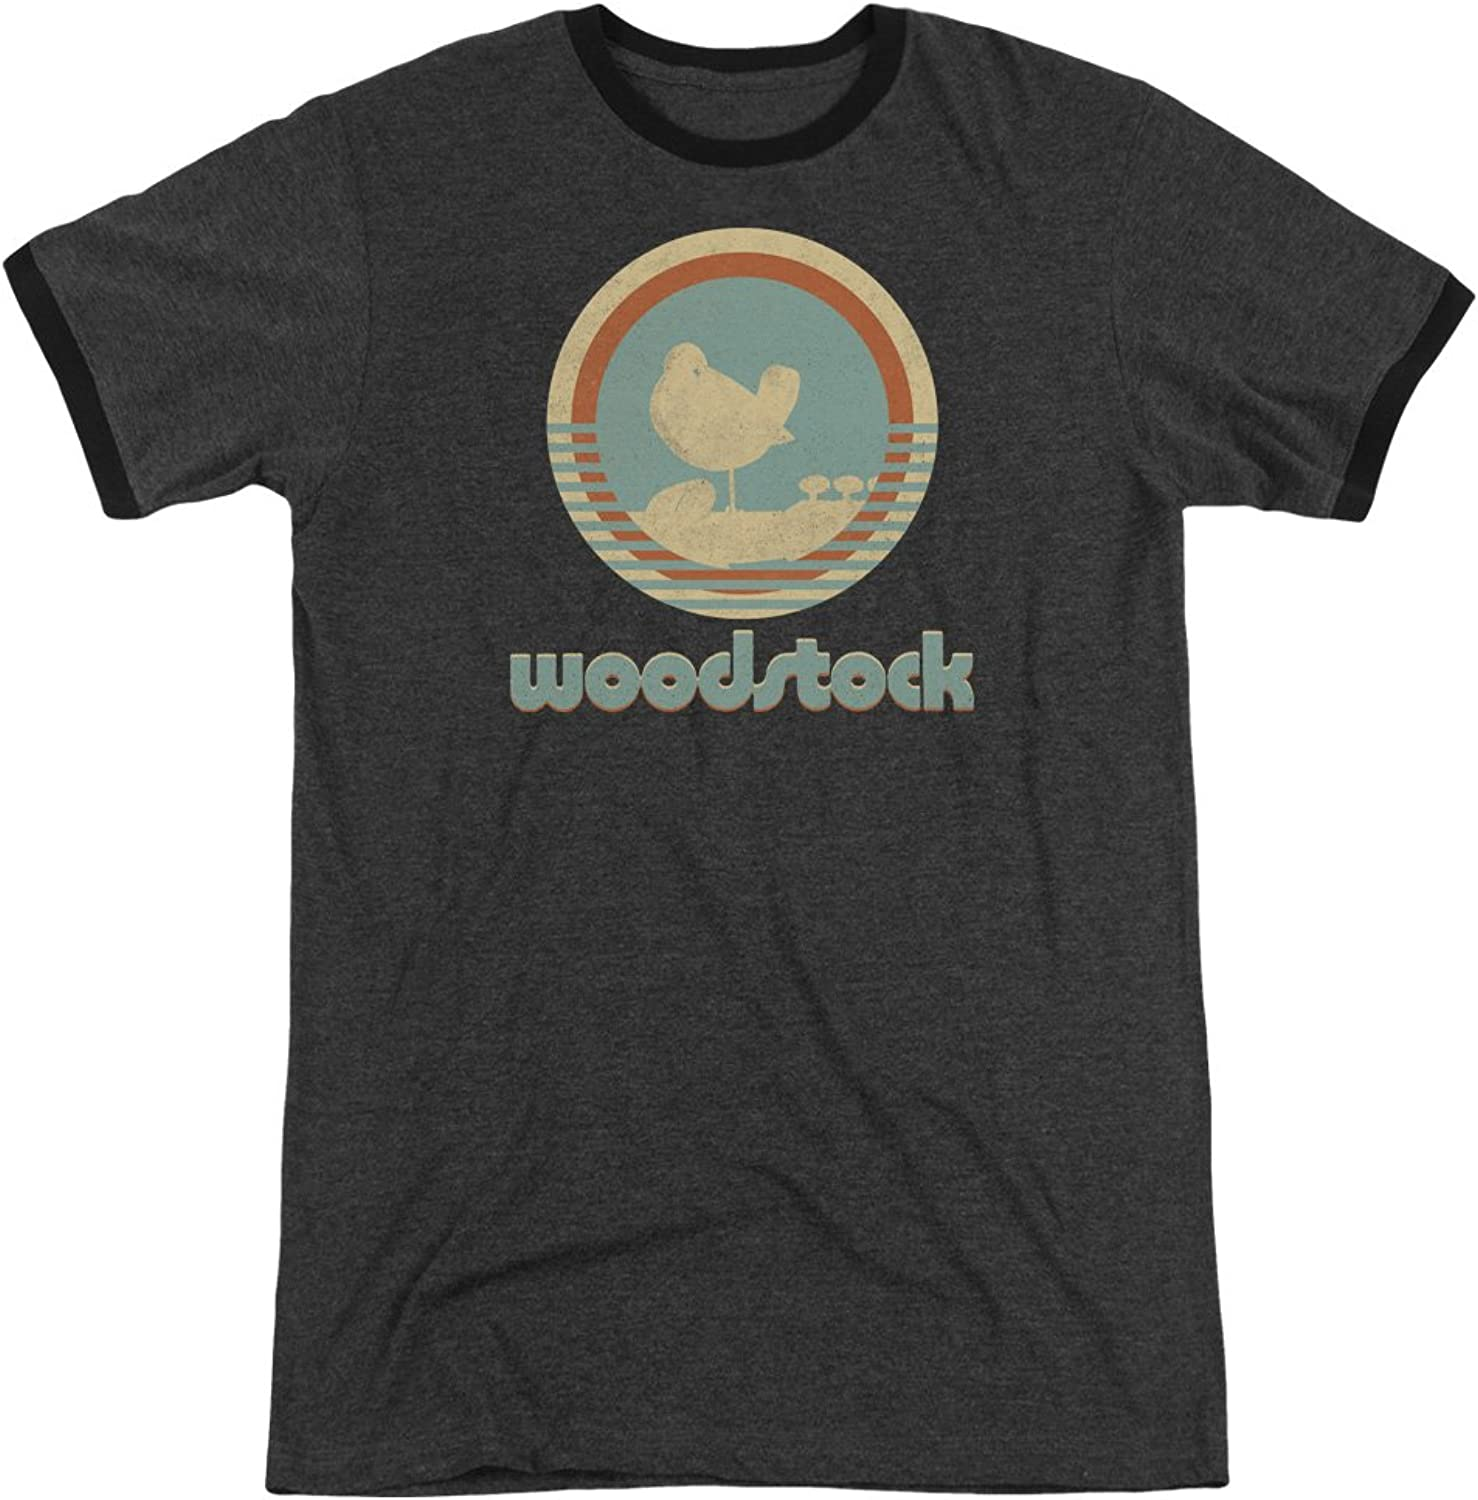 e3be37ab8 Woodstock Mens Ringer TShirt Circle Bird ntqtrt2596-Sporting goods ...